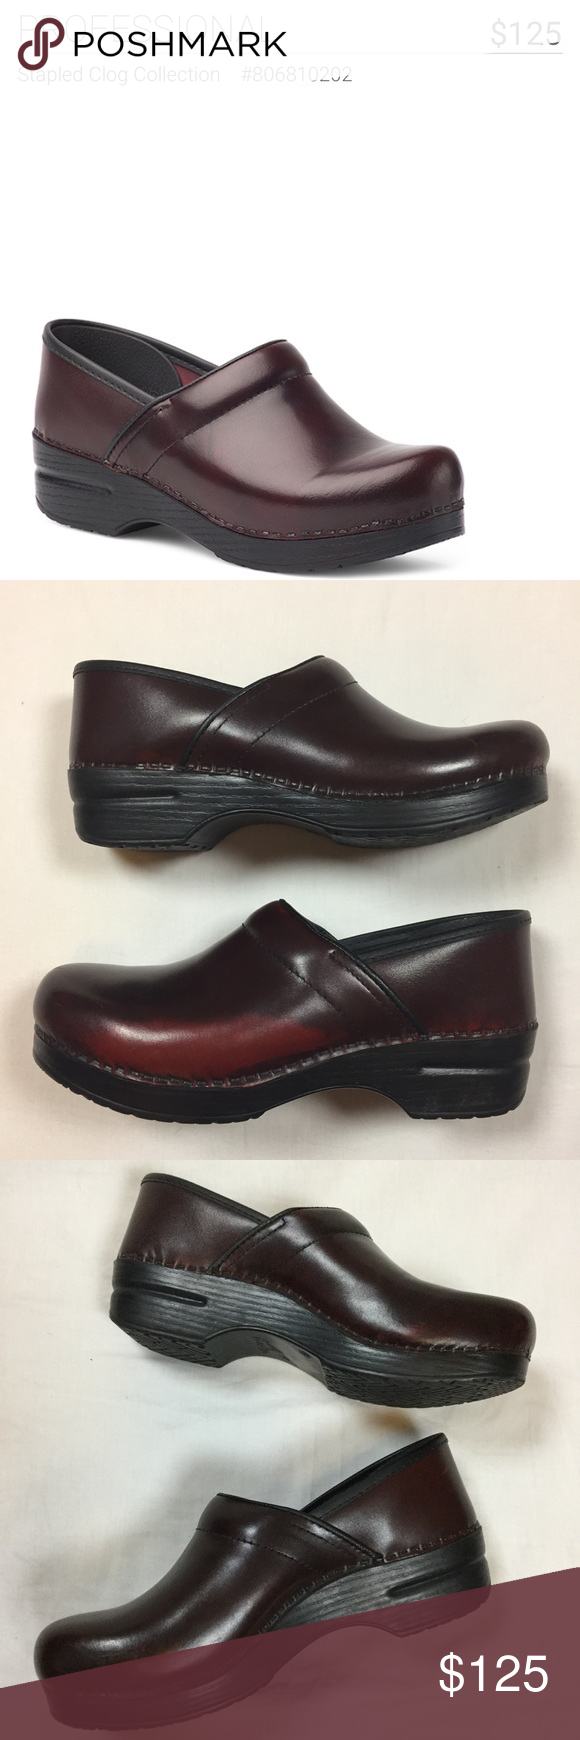 68f9755944b  125 Burgundy Dansko Clogs Perfect for spending long hours on your feet.  Nurse